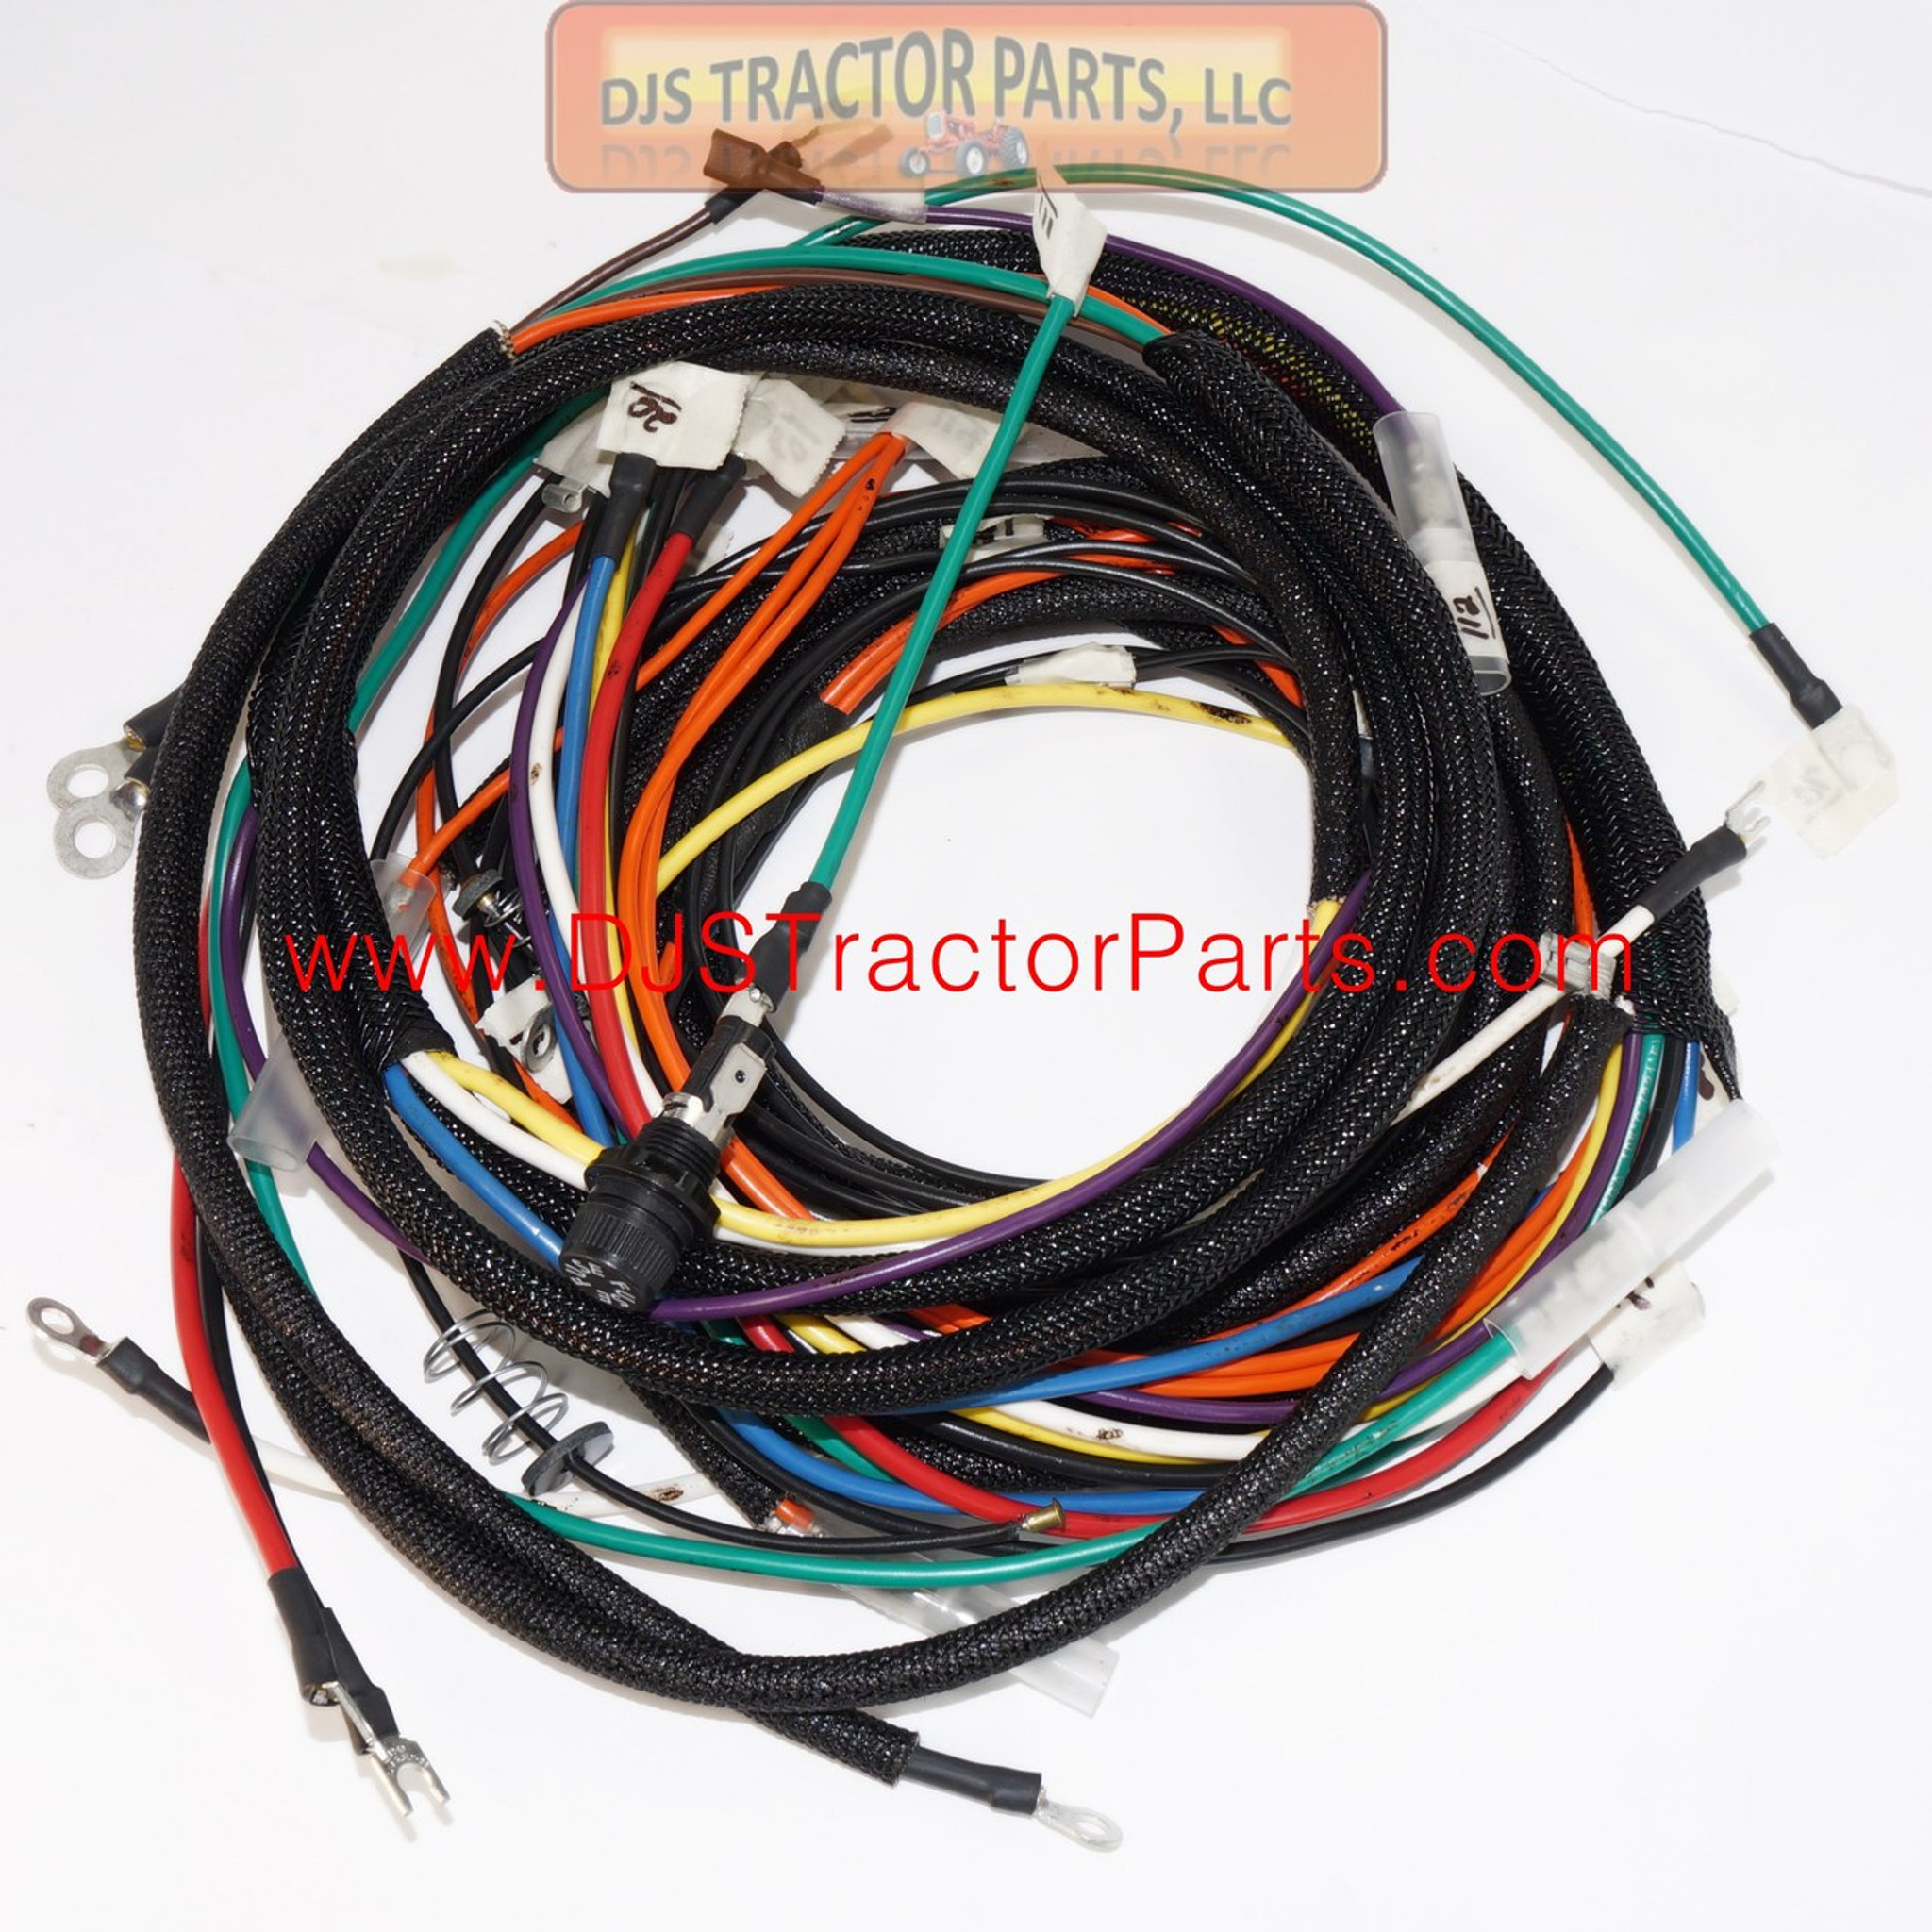 Wiring Harness Kit Diagrams Semi Trailer Wire Allis Chalmers D14 D15 Series I Djs Tractor For Utility